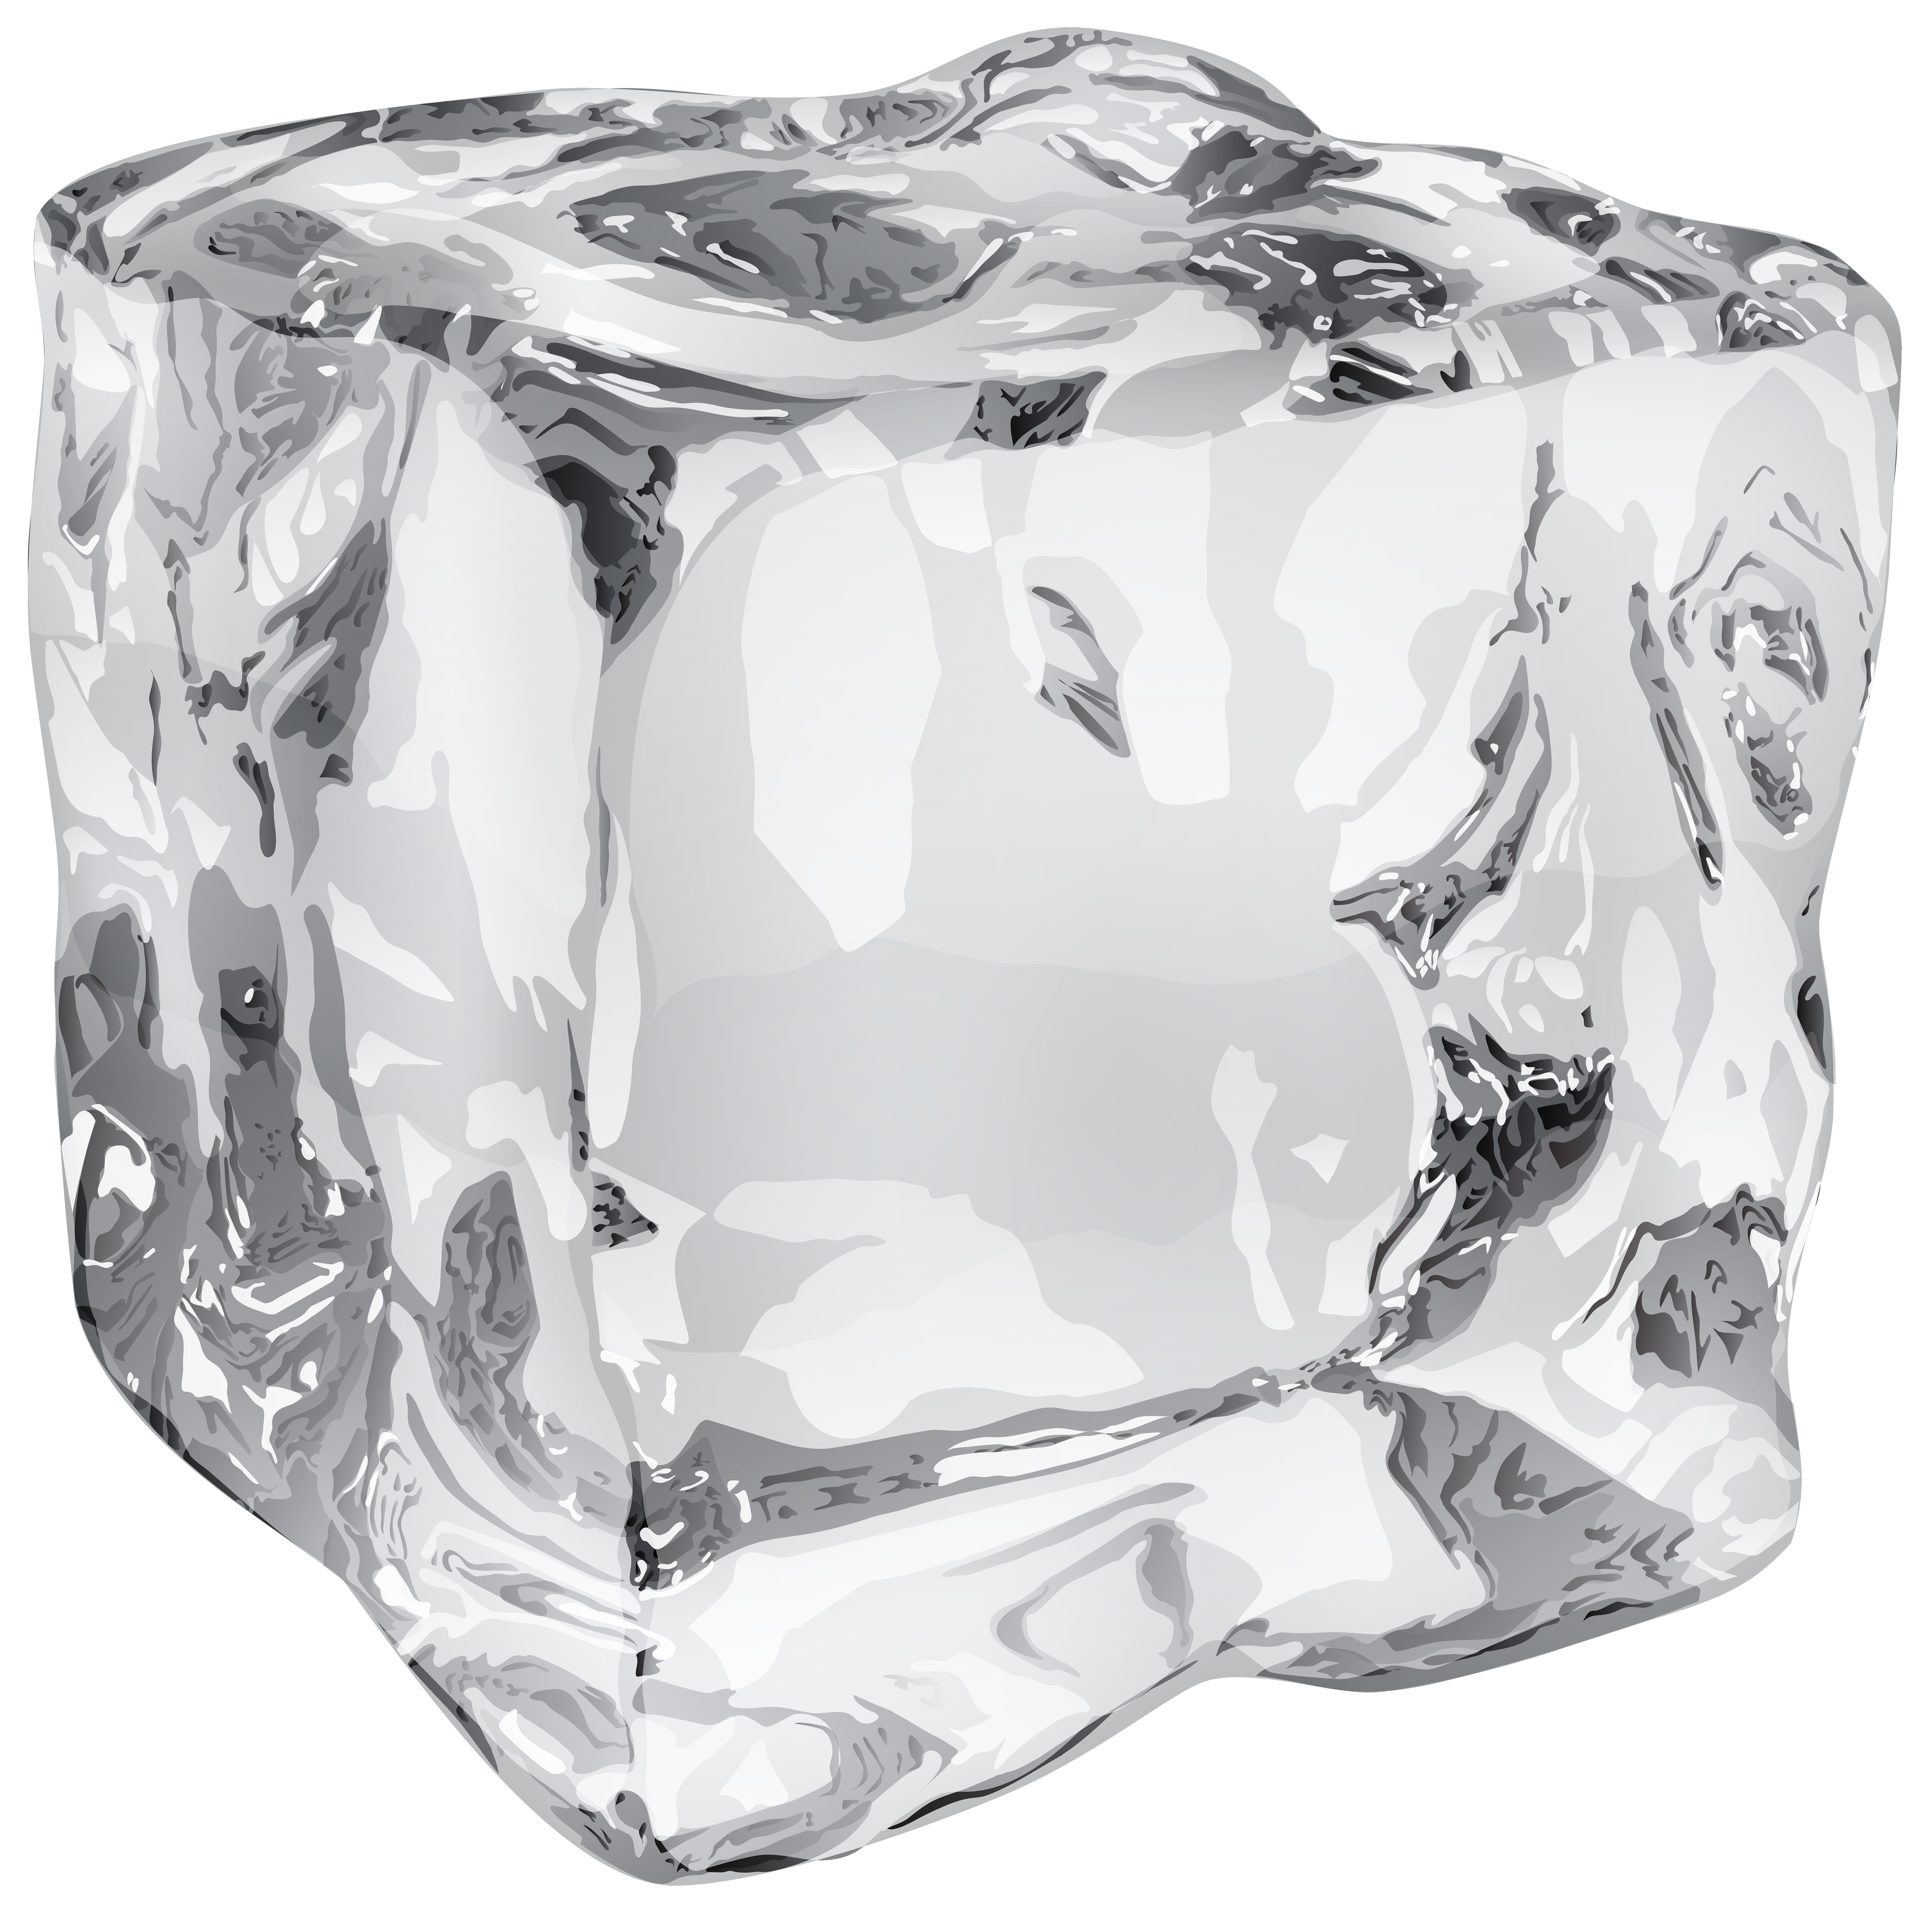 Ice Cube clipart transparent  Ice Image View Yopriceville